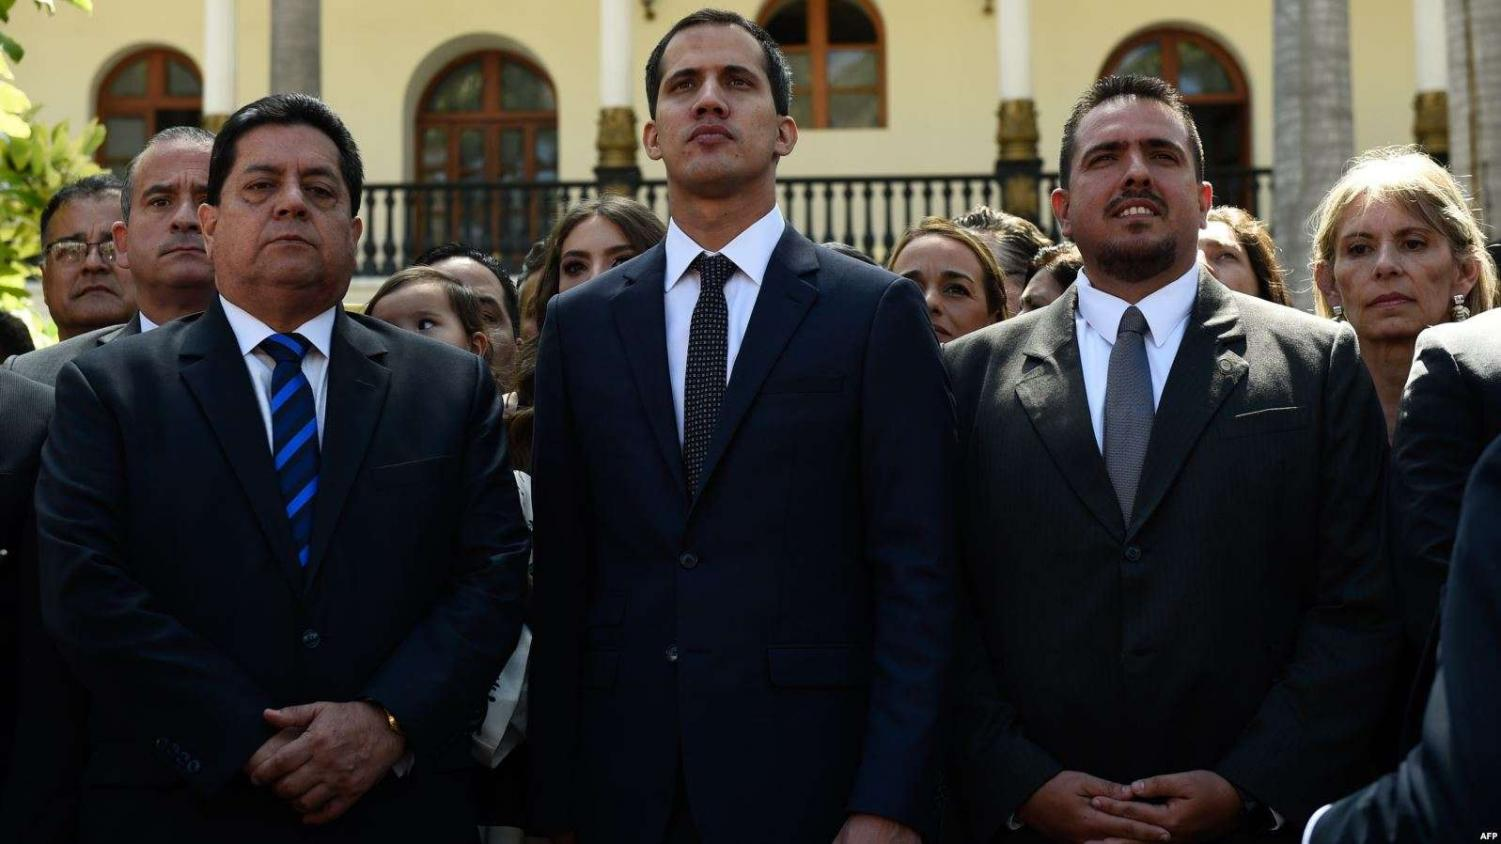 Juan Guaido stands with two fellow politicians, Edgar Zambrano (left) and Stalin Gonzales (right). Guaido declared himself Interim President of Venezuela on Jan. 23, sparking massive controversy and outcry globally.